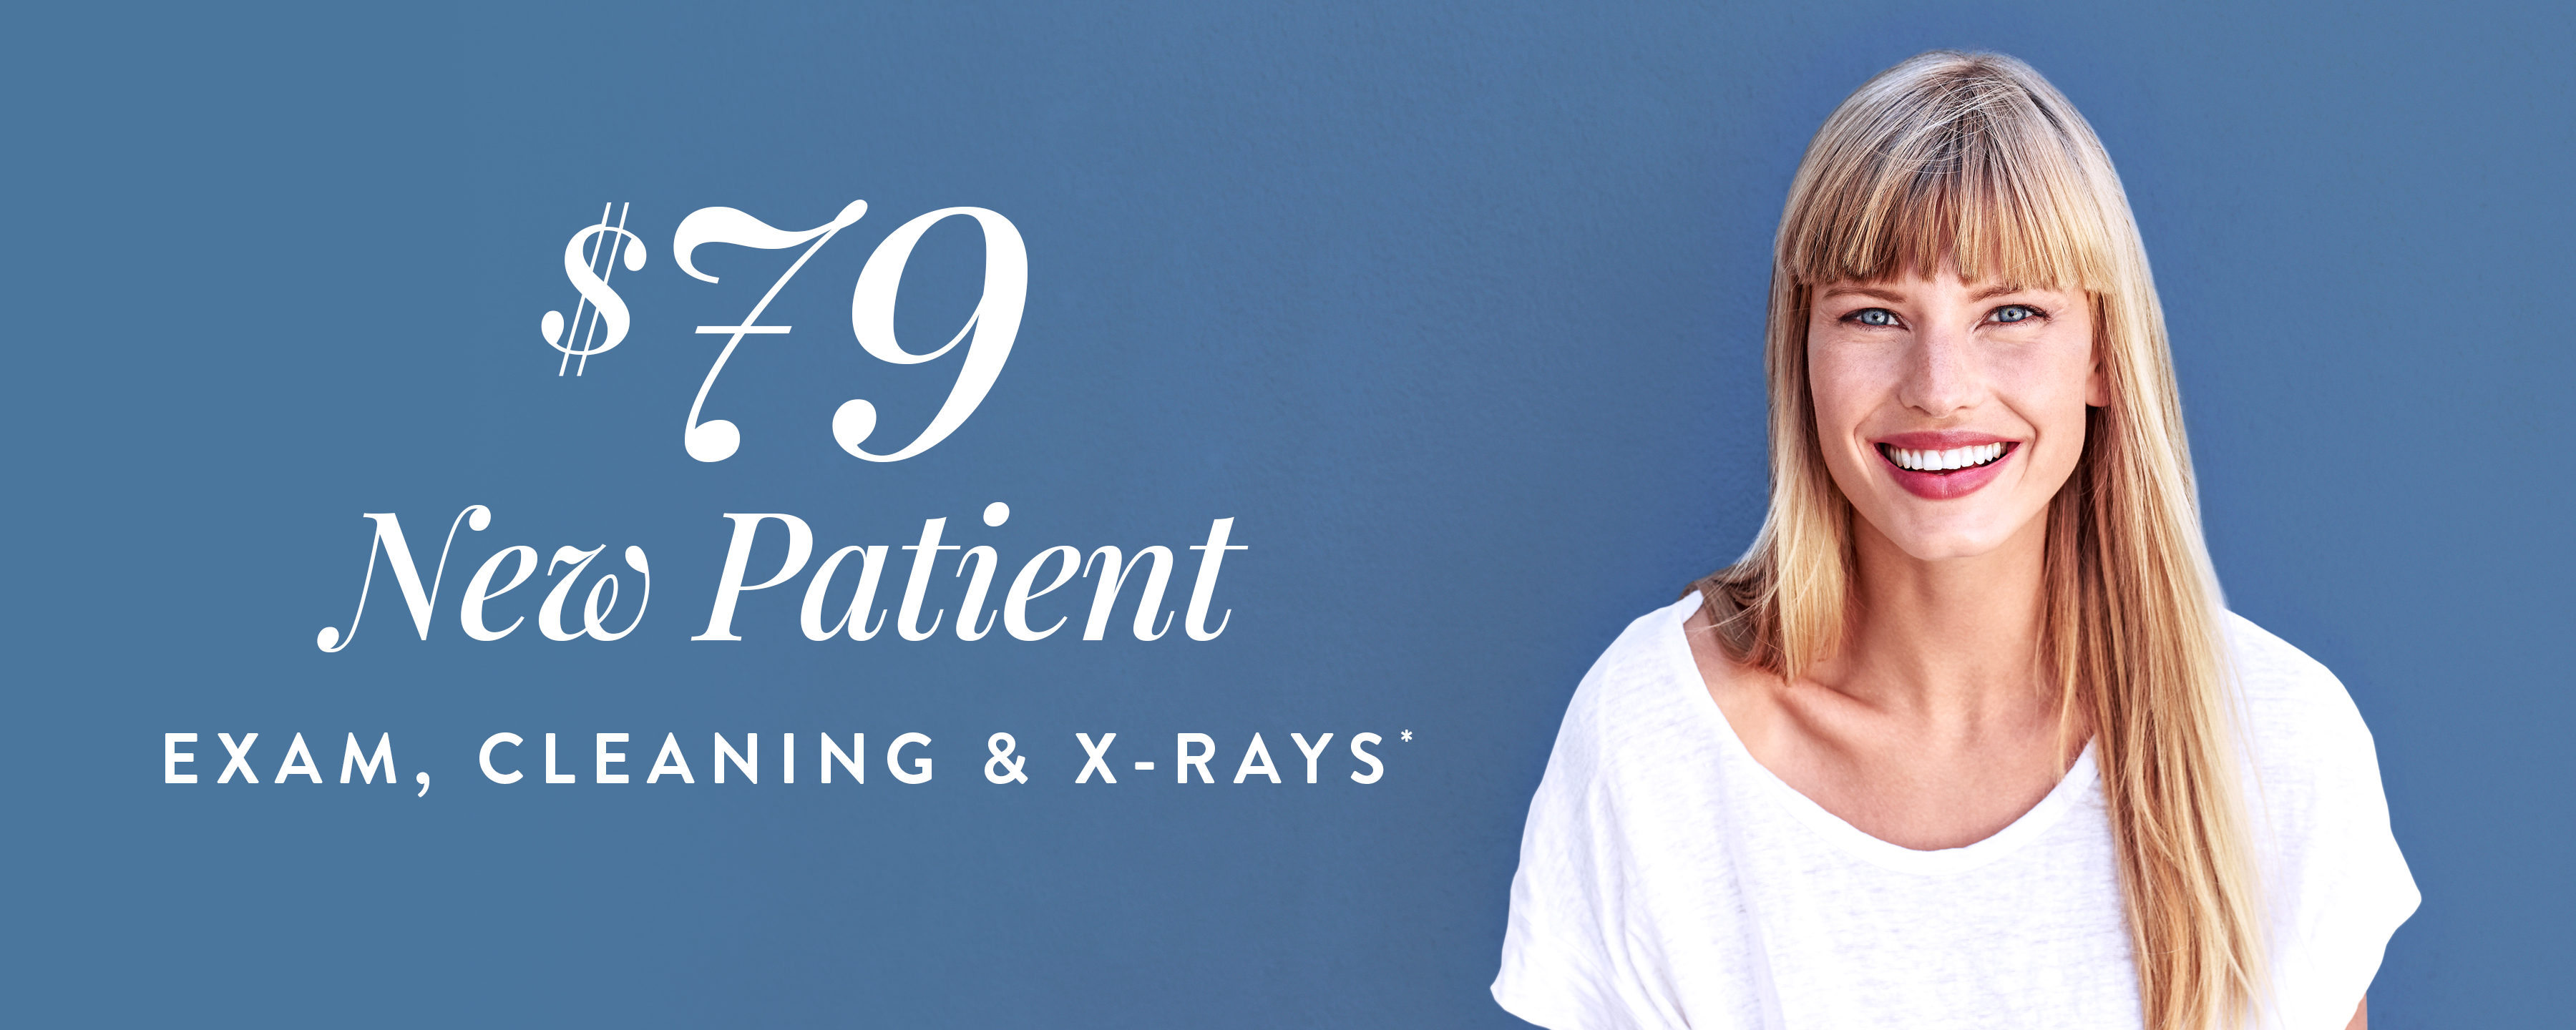 Special Offer $79 New Patient